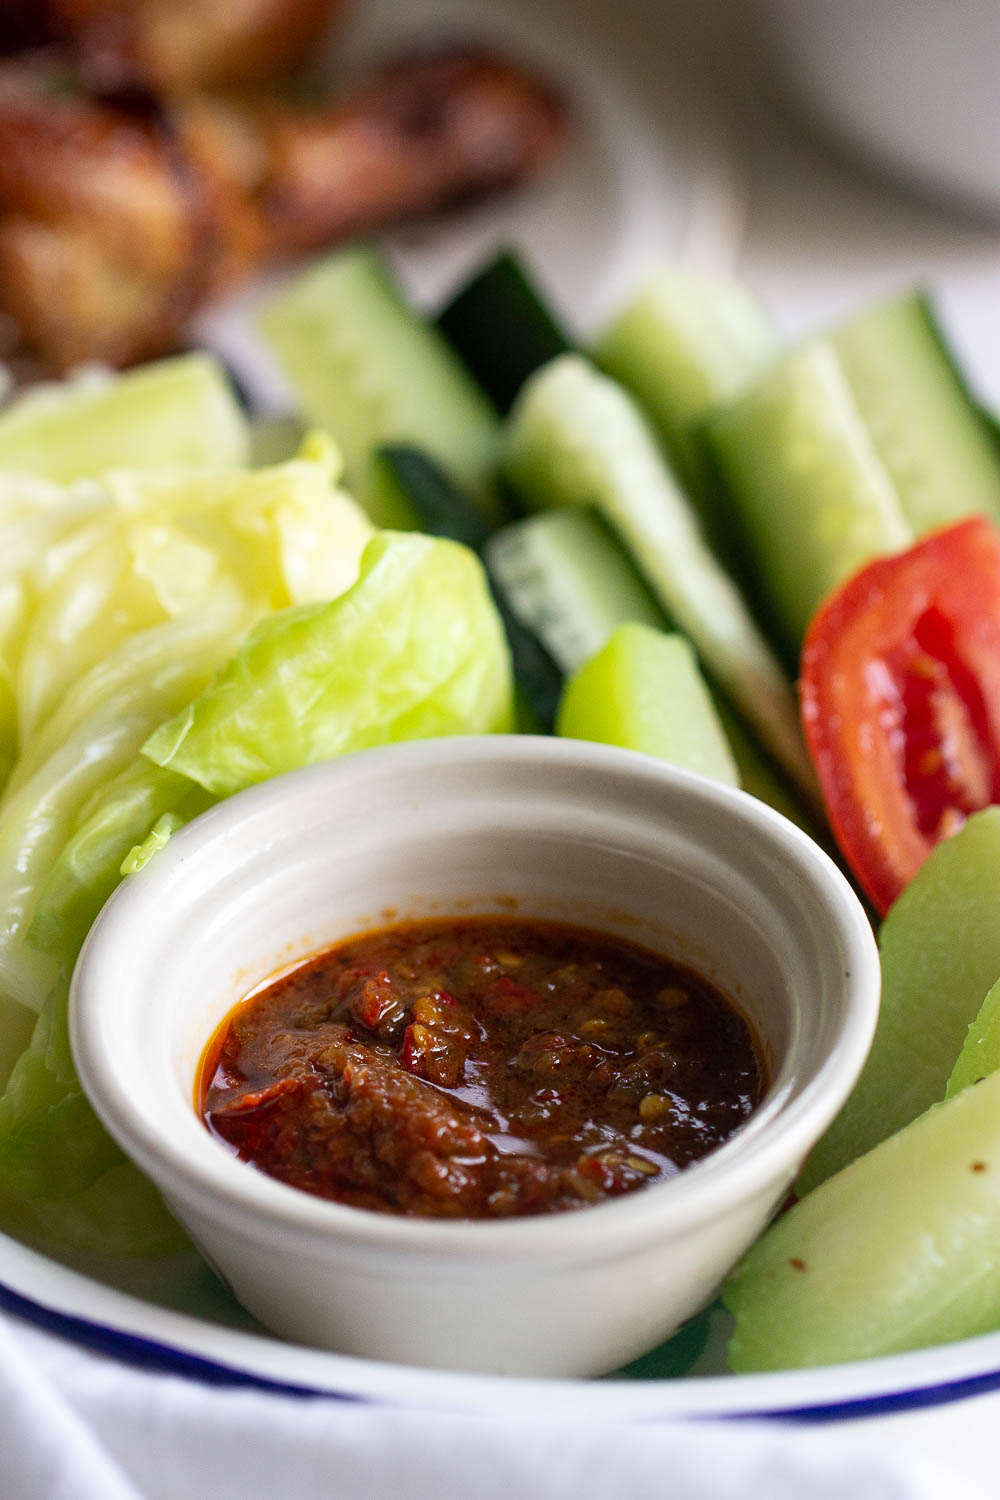 If you're a fan of something spicy, you need to try sambal terasi. Also known as sambal belacan, this spicy condiment is very popular and pairs well with fried chicken or lalapan.